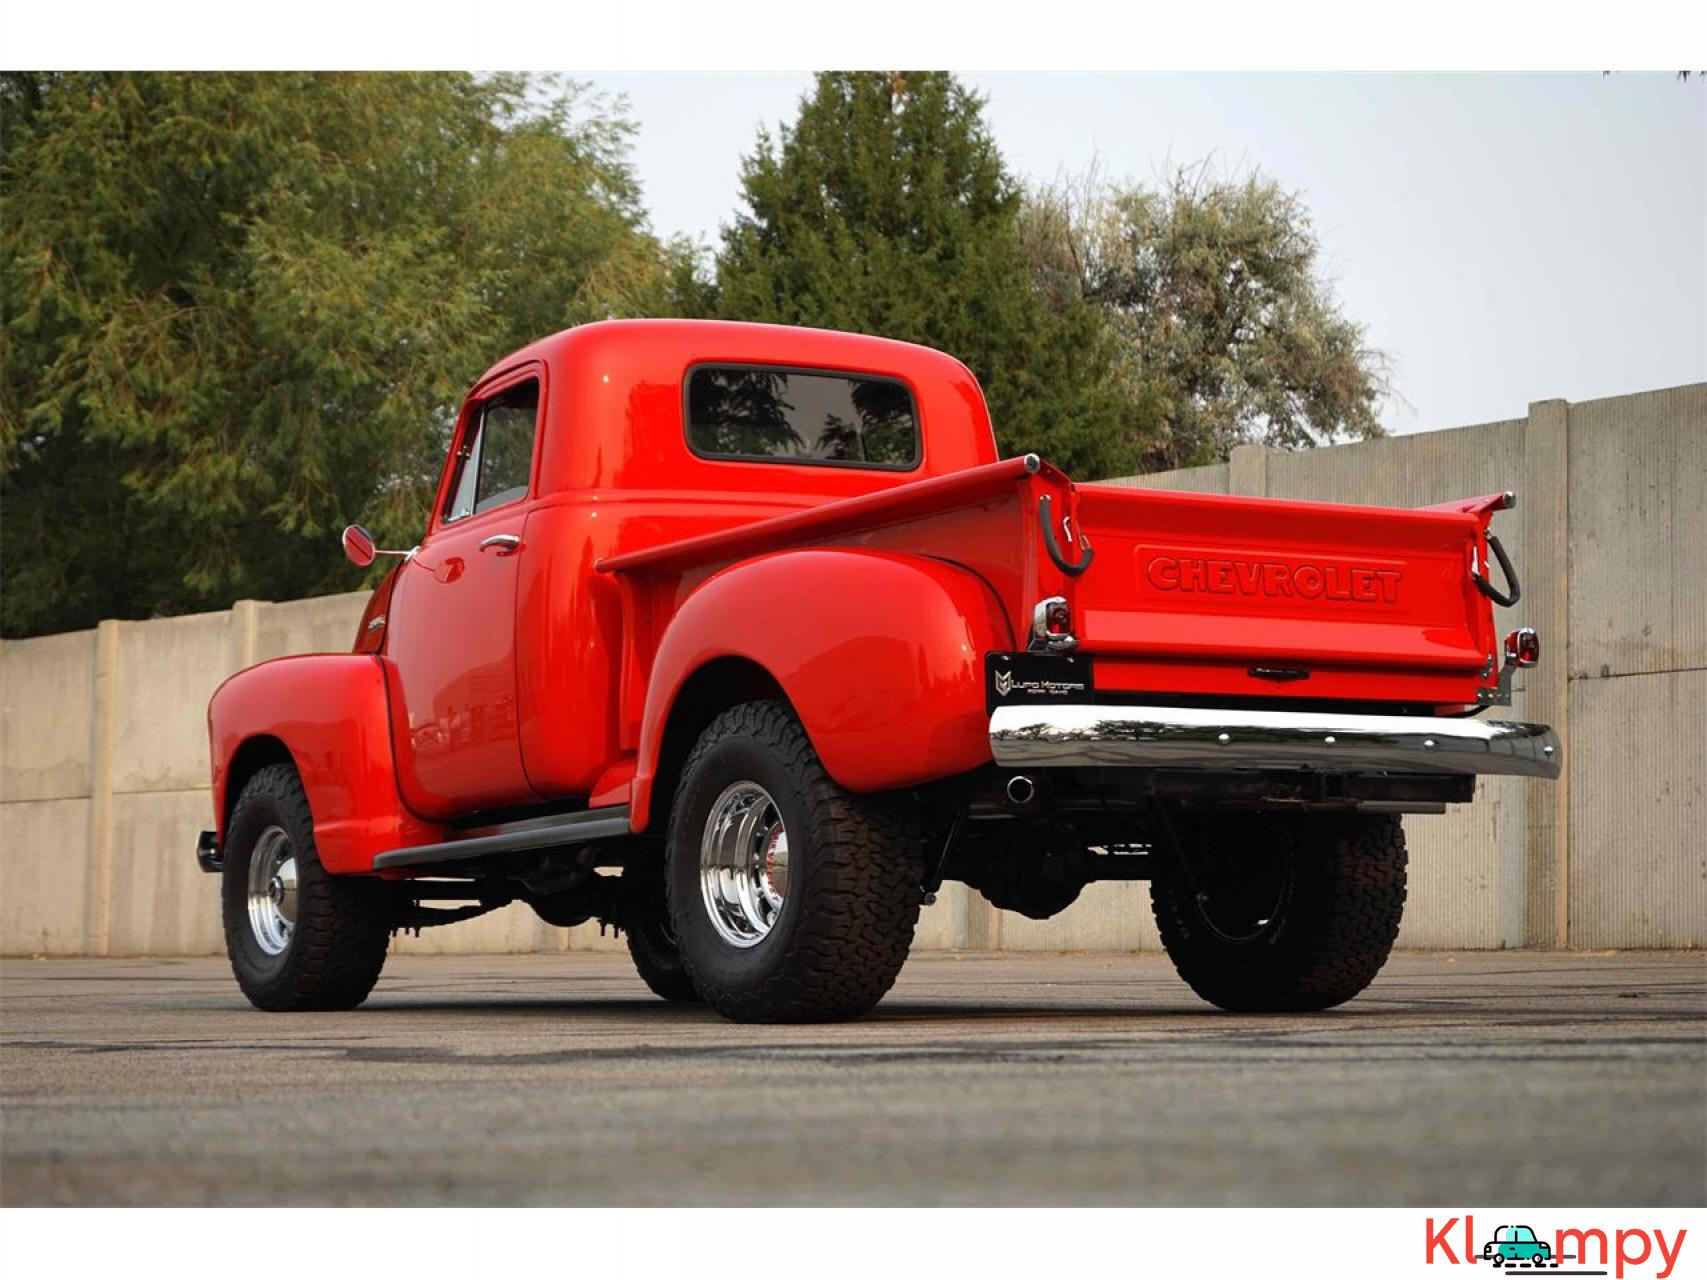 1951 Chevrolet 3100 350 V8 with a B&M Supercharger - 4/17